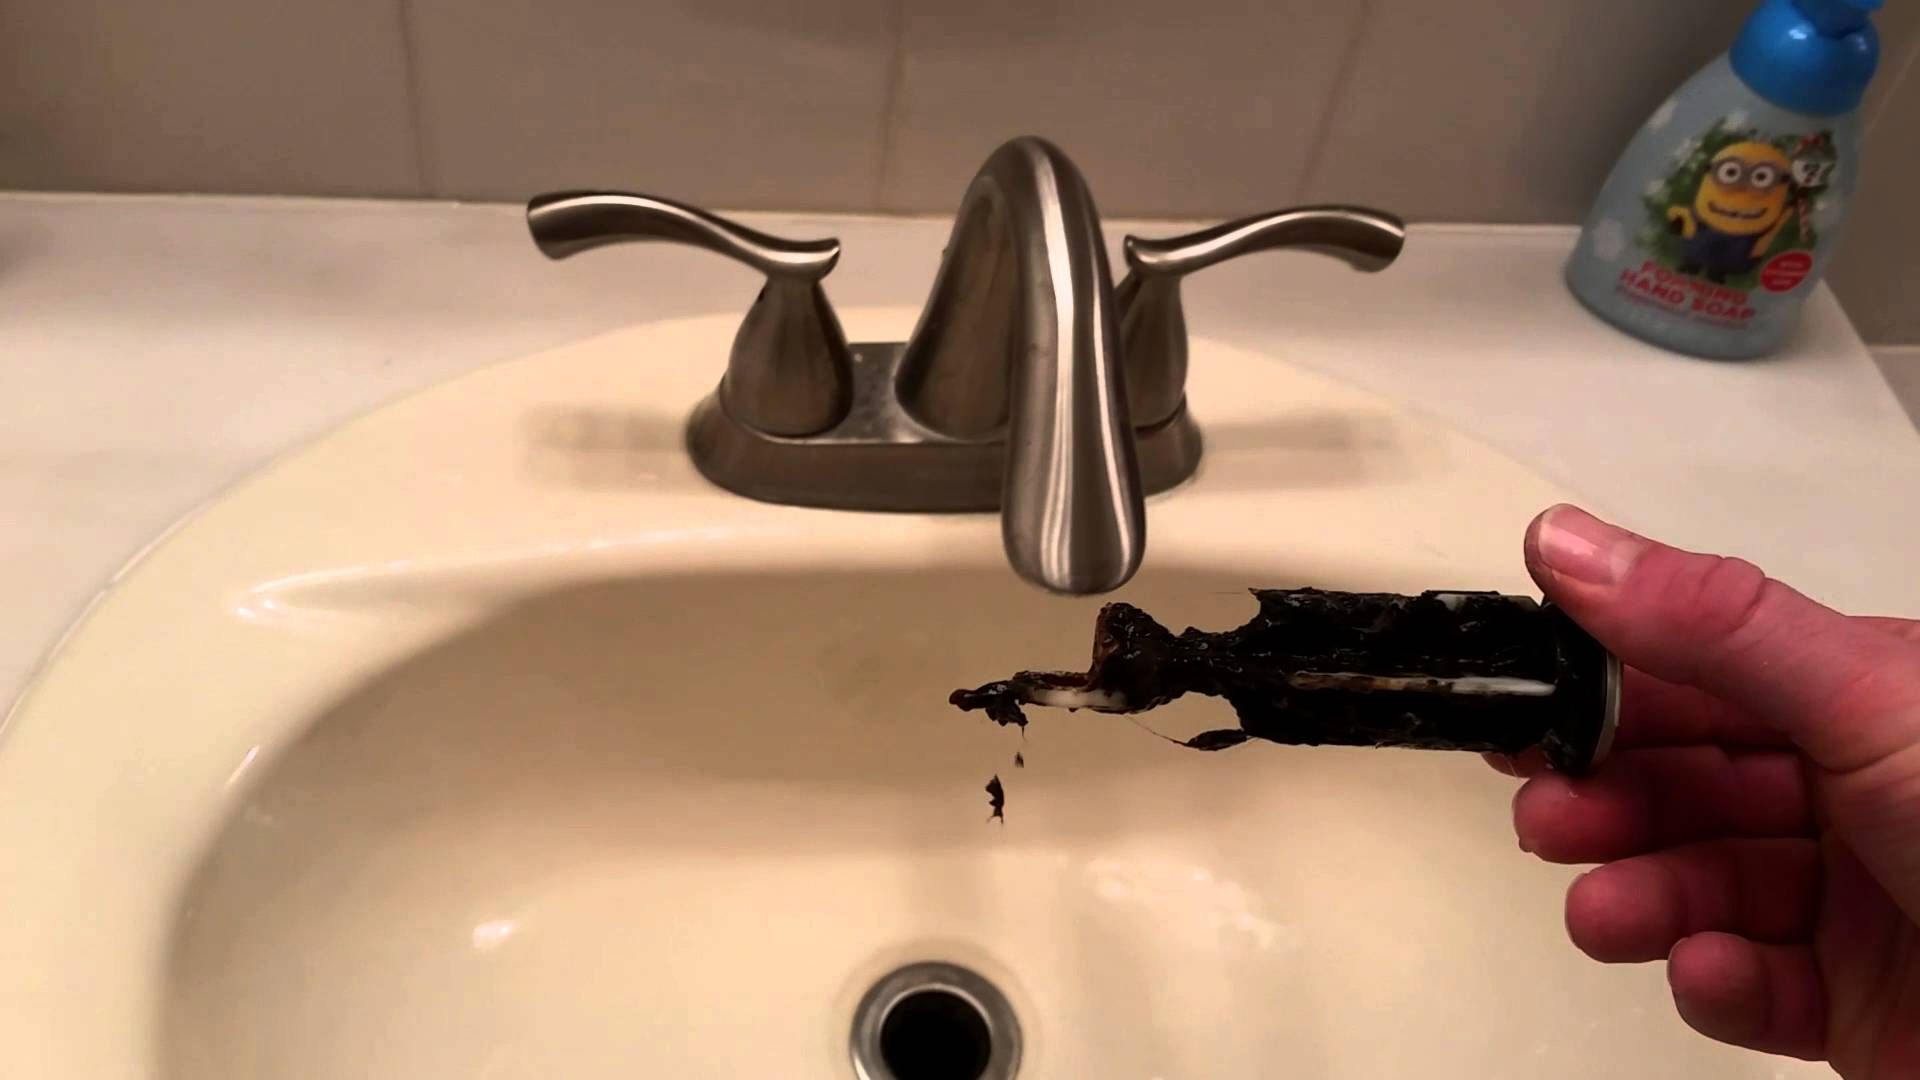 Bathroom Sink Quick Fix How To Remove And Clean The Stopper Unclog Si